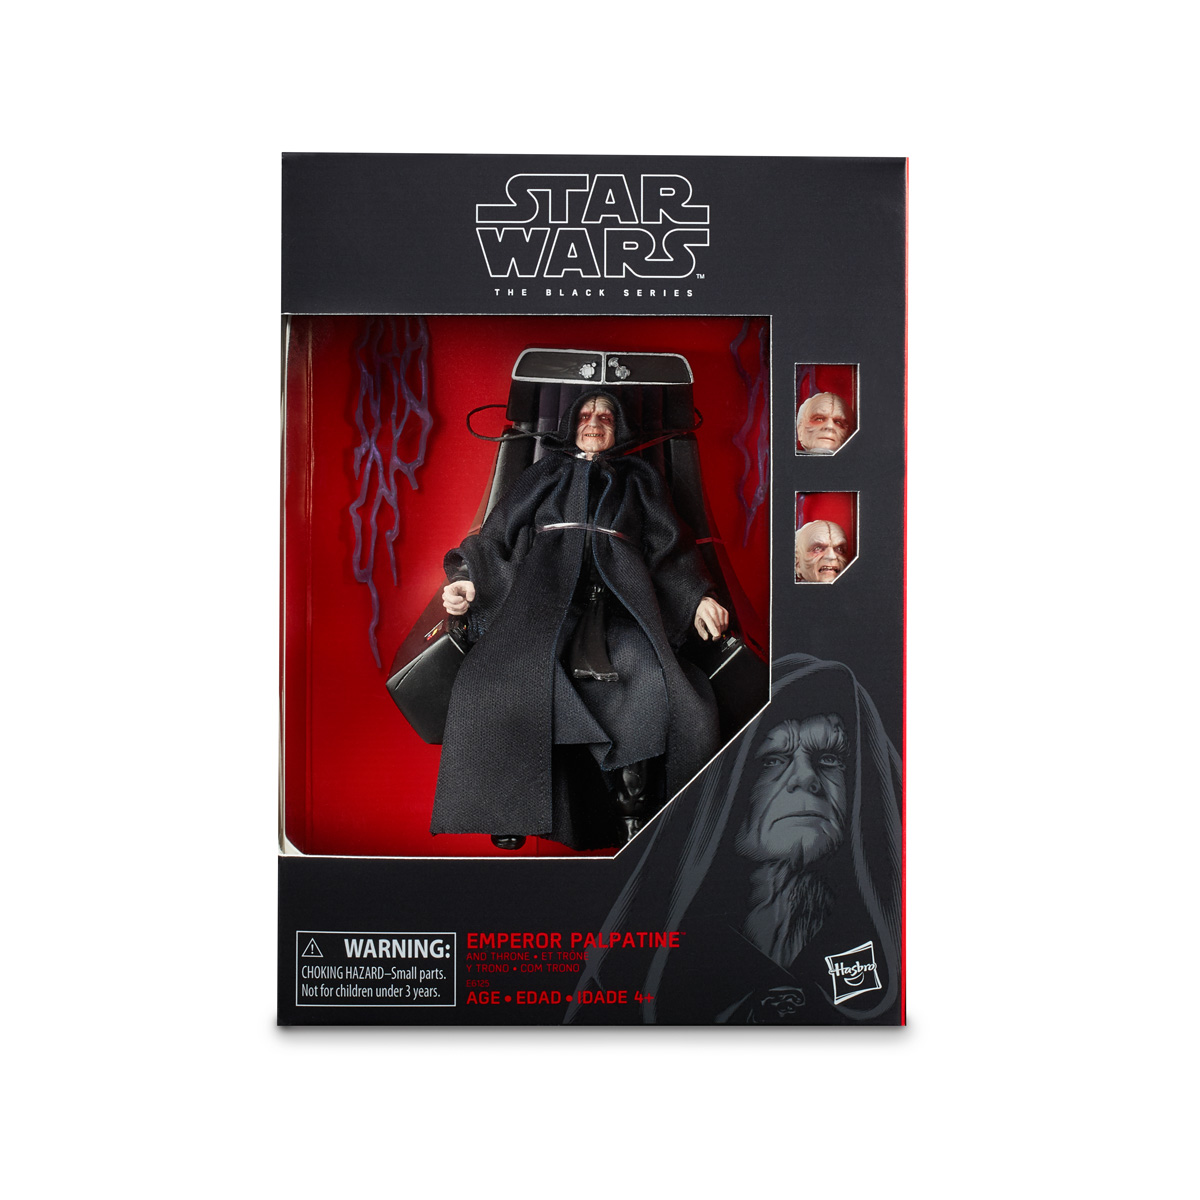 star-wars-the-black-series-6-inch-emperor-palpatine-figure-with-throne-in-pck-2